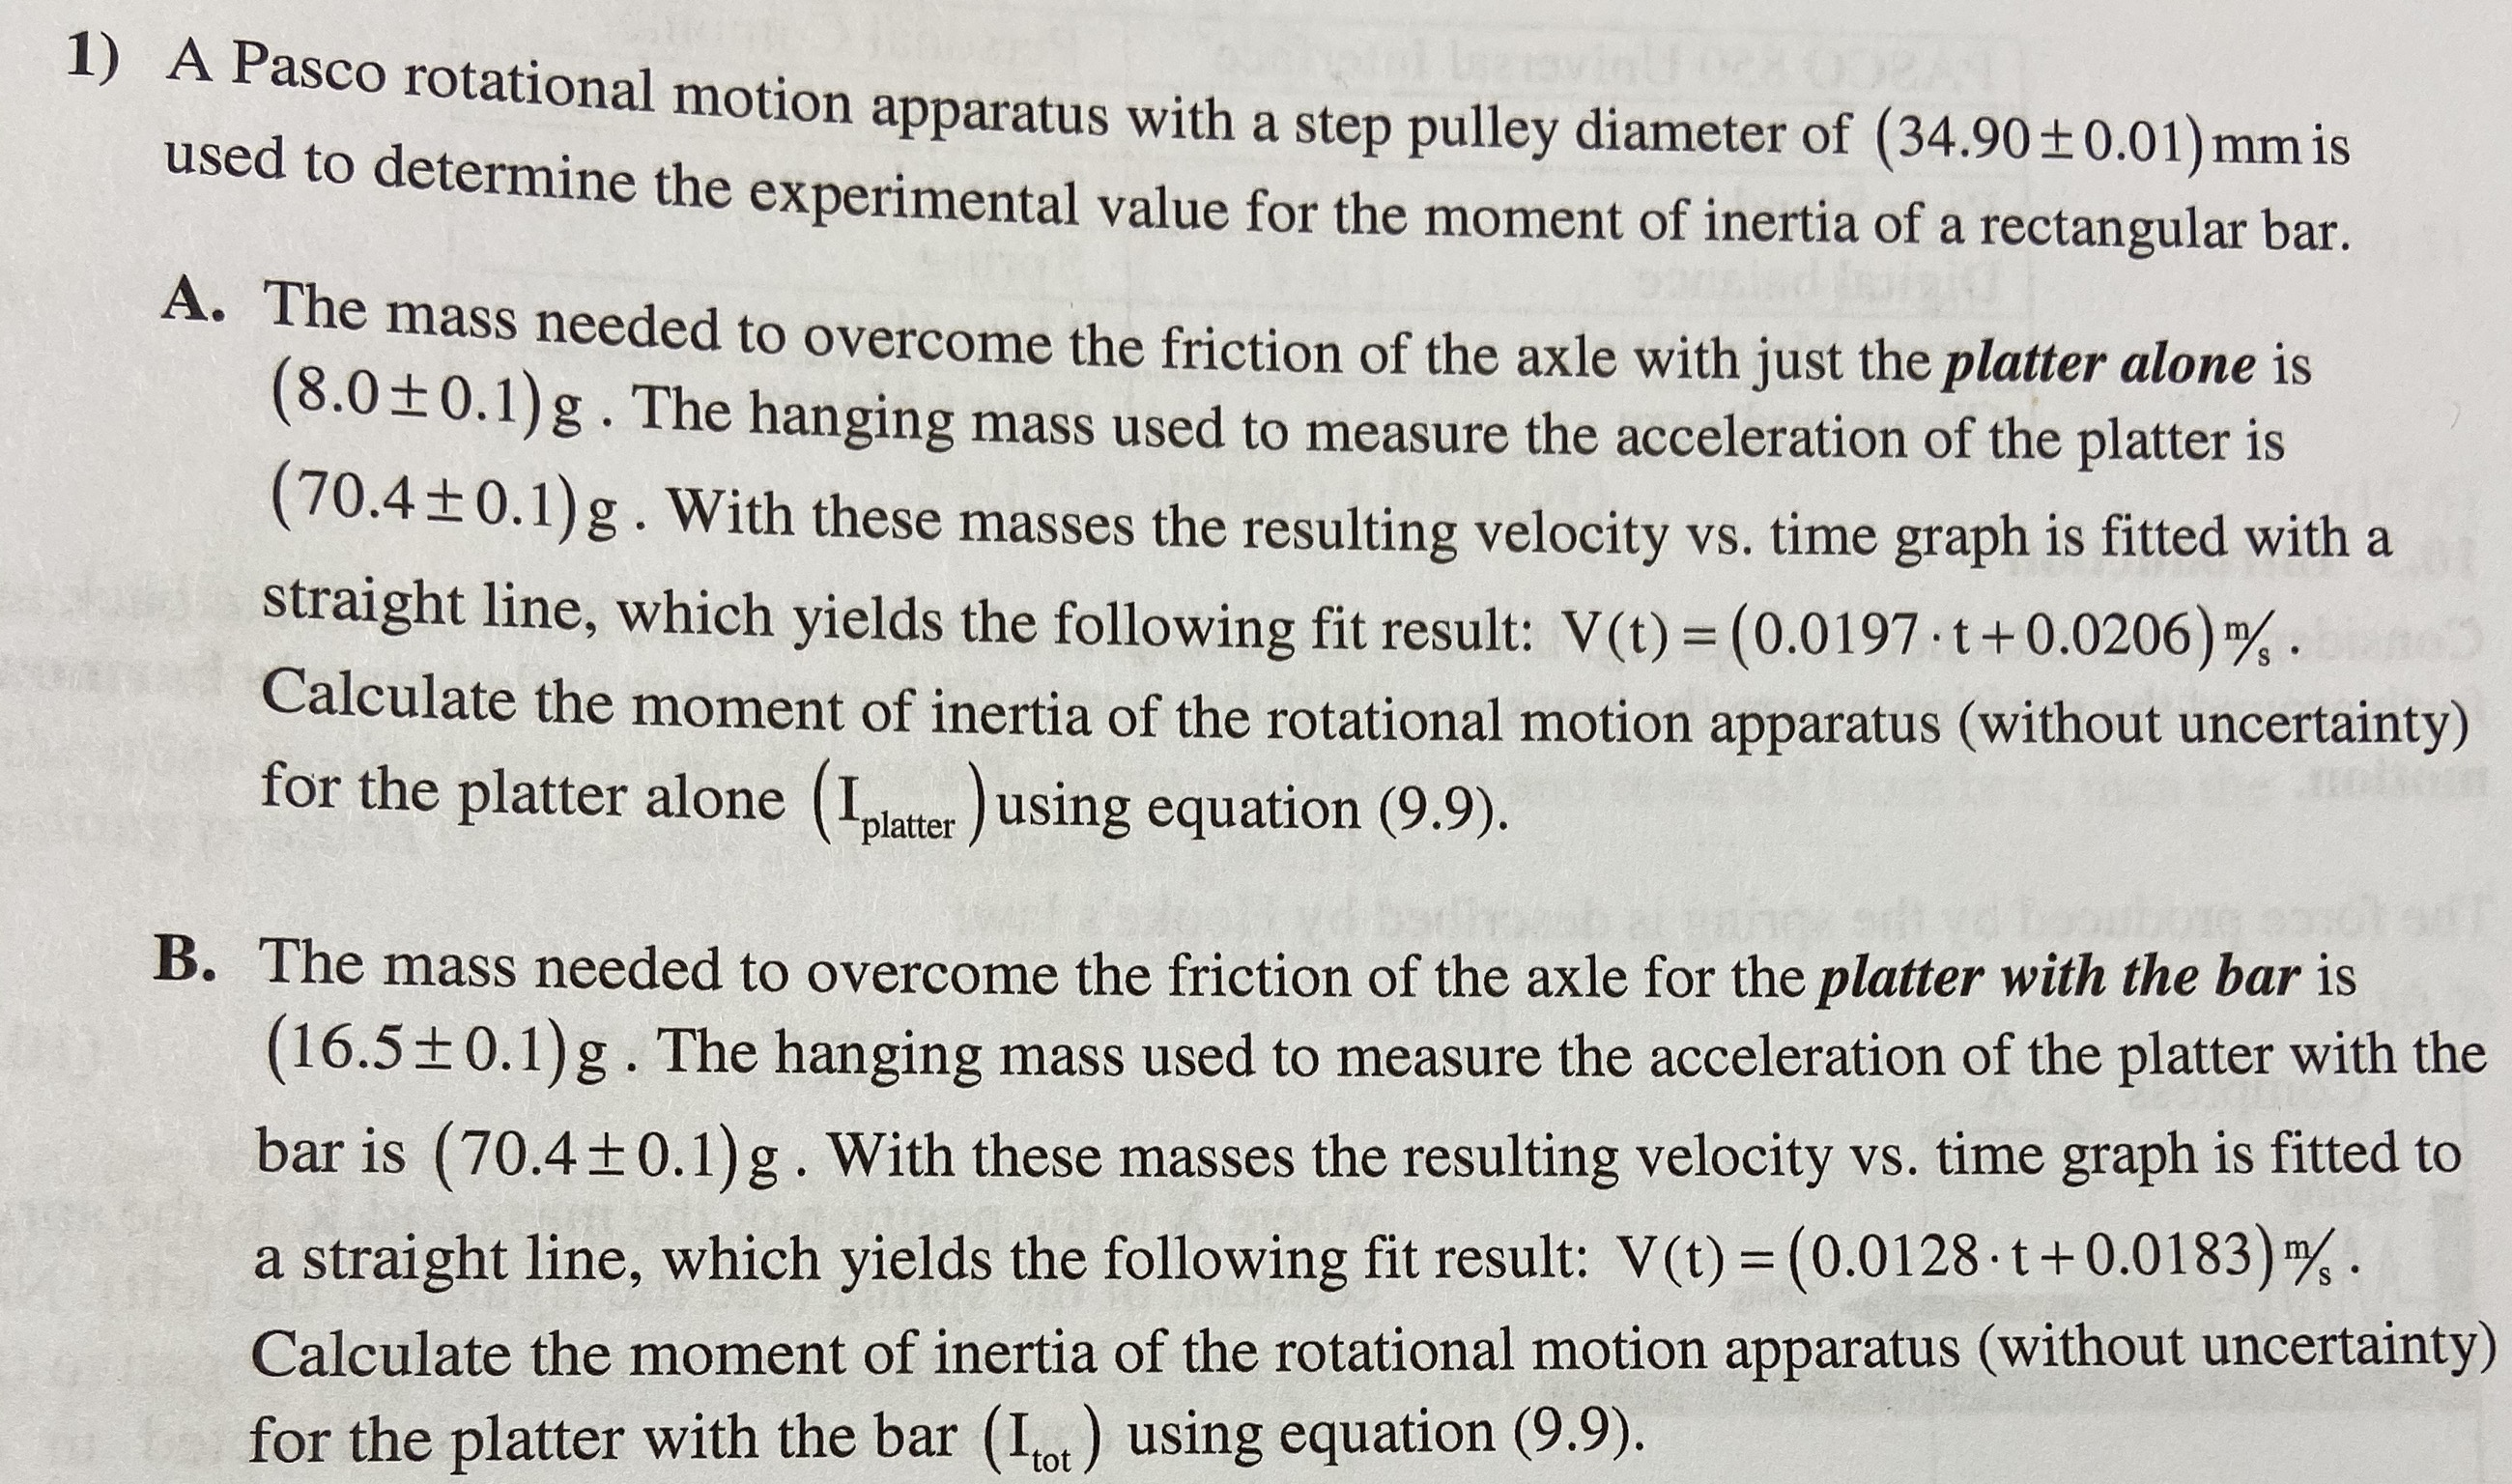 1) A Pasco rotational motion apparatus with a step pulley diameter of (34.90 ± 0.01) mm is used to determine the experimental value for the moment of inertia of a rectangular bar A. The mass needed to overcome the friction of the axle with just the platter alone is (8.0±0.1)g.The hanging mass used to measure the acceleration of the platter is (70.4+0.1) g. With these masses the resulting velocity vs. time graph is fitted with a straight line, which yields the following fit result: V(t) (0.0197 t+0.0206) 4 Calculate the moment of inertia of the rotational motion apparatus (without uncertainty) for the platter alone (plater using equation (9.9). S e s B. The mass needed to overcome the friction of the axle for the platter with the bar is (16.5±0.1)g.The hanging mass used to measure the acceleration of the platter with the bar is (70.4 0.1)g . With these masses the resulting velocity vs. time graph is fitted to straight line, which yields the following fit result: V(t) (0.0128 t + 0.01 83) Calculate the moment of inertia of the rotational motion apparatus (without uncertainty) bafor the platter with the bar (Iot) using equation (9.9)